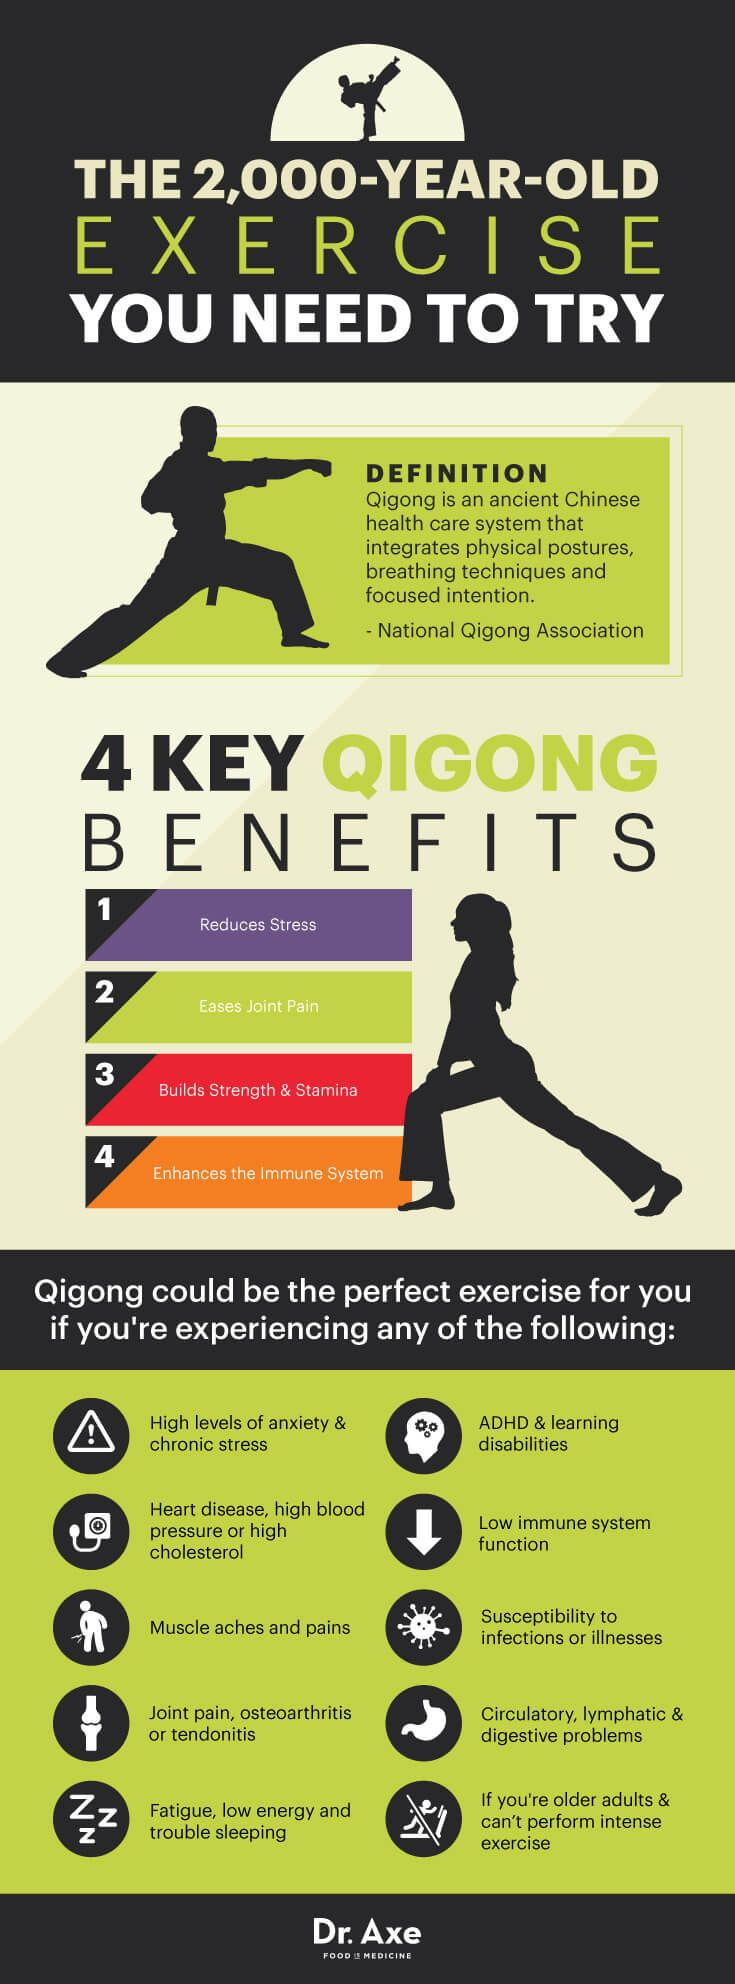 Qigong: The Ancient Exercise You Need to Try